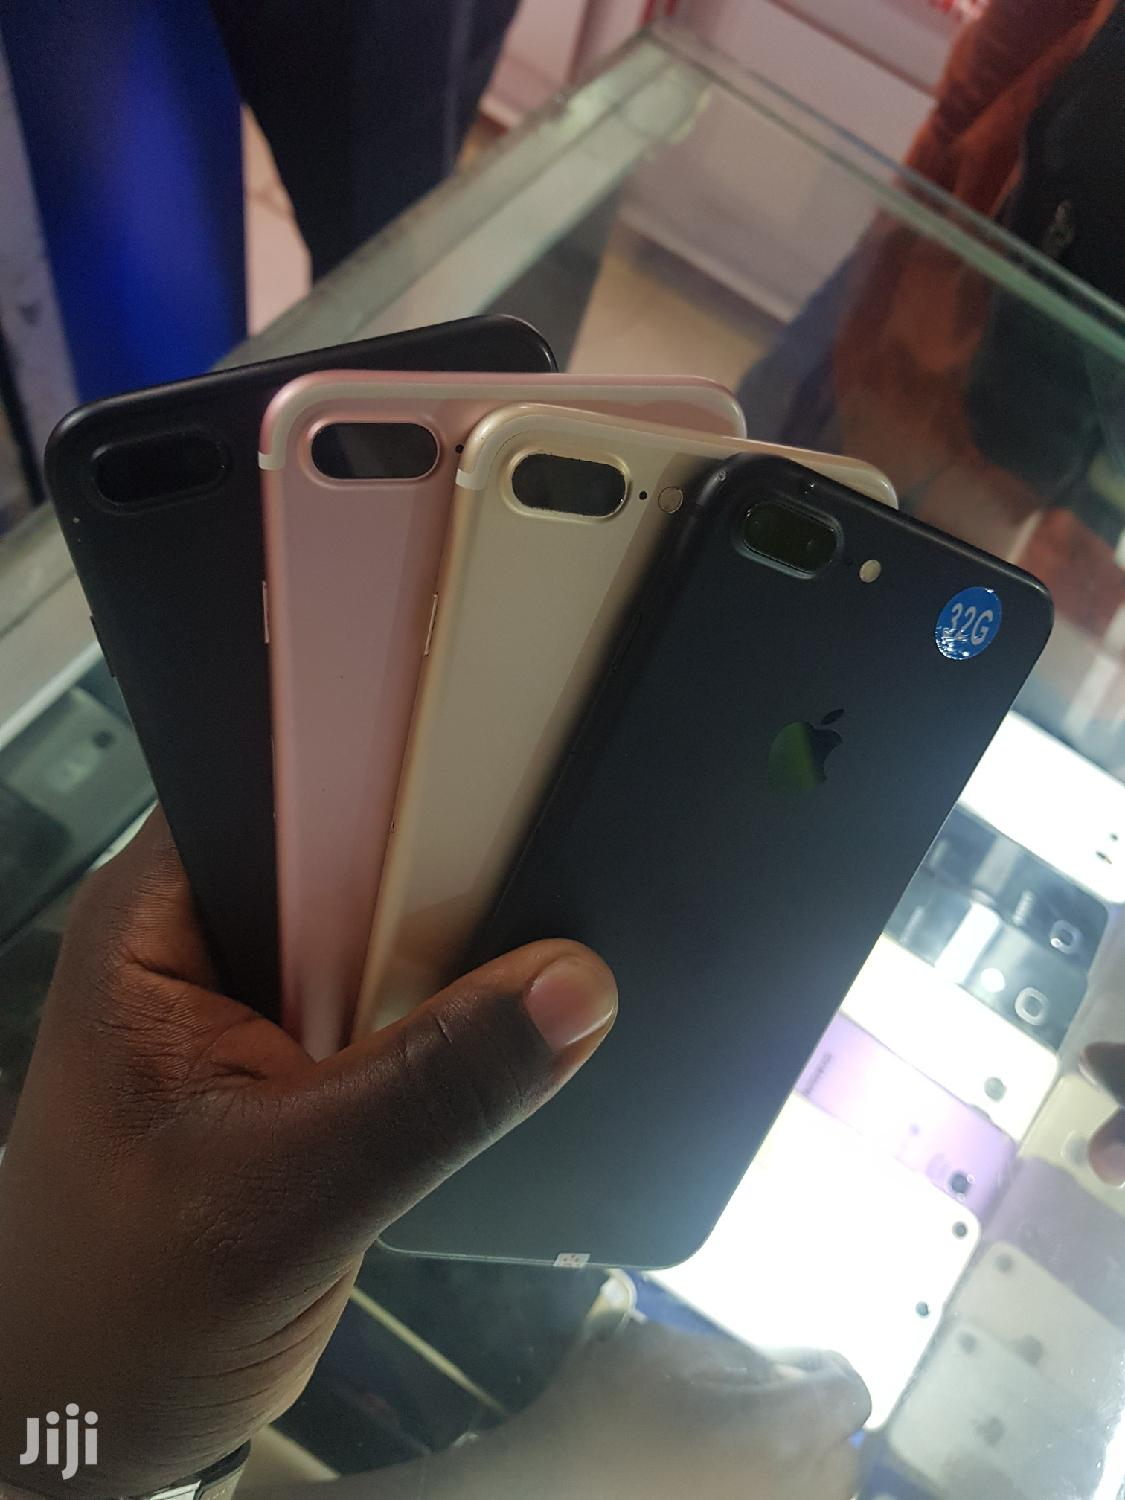 Apple iPhone 7 Plus 32 GB | Mobile Phones for sale in Kampala, Central Region, Uganda